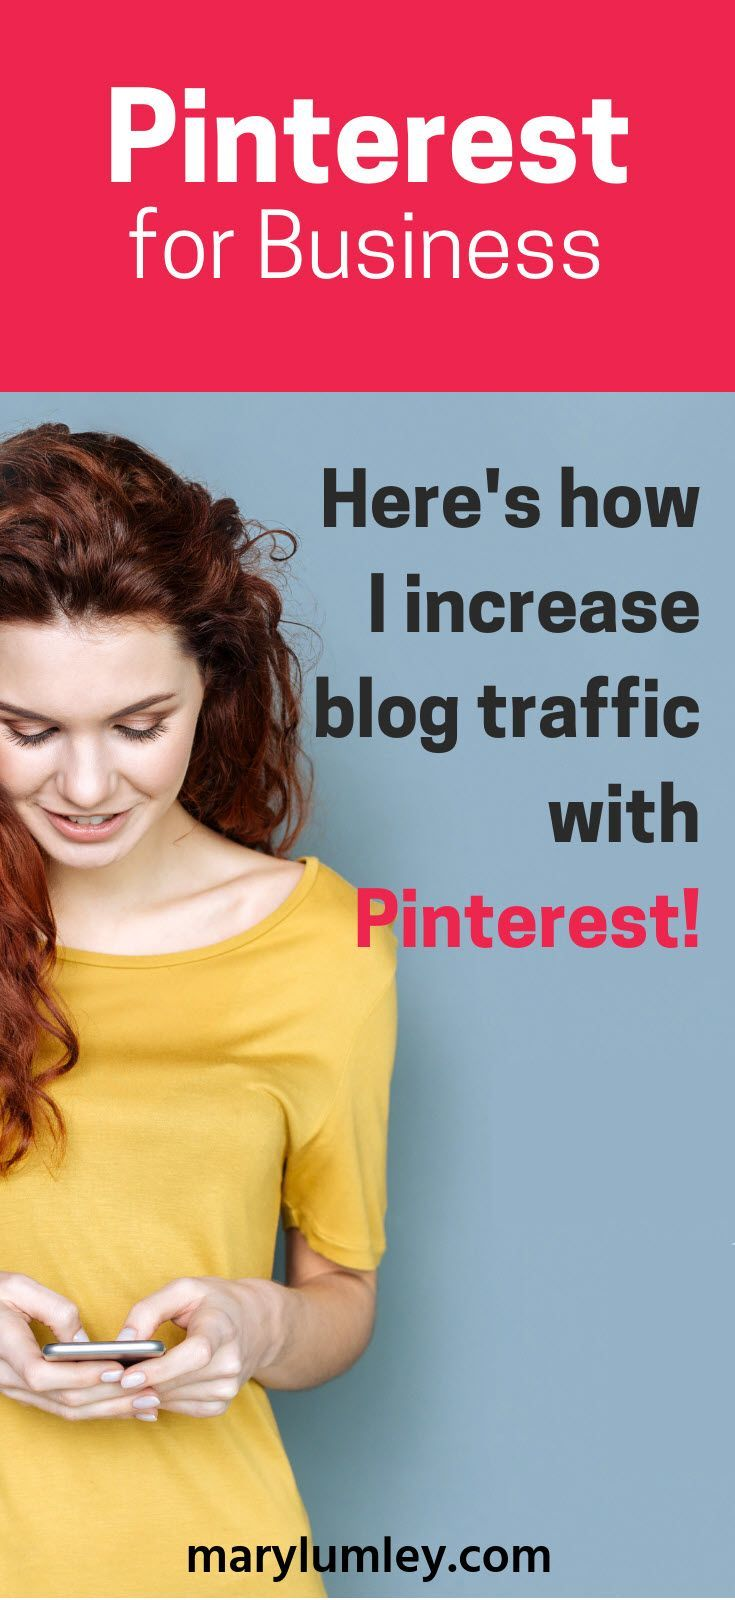 How to increase blog traffic with Pinterest – Here's how to use Pinterest to drive traffic to your blog.  Increase your business visibility and number of visitors to your #blog and your website!